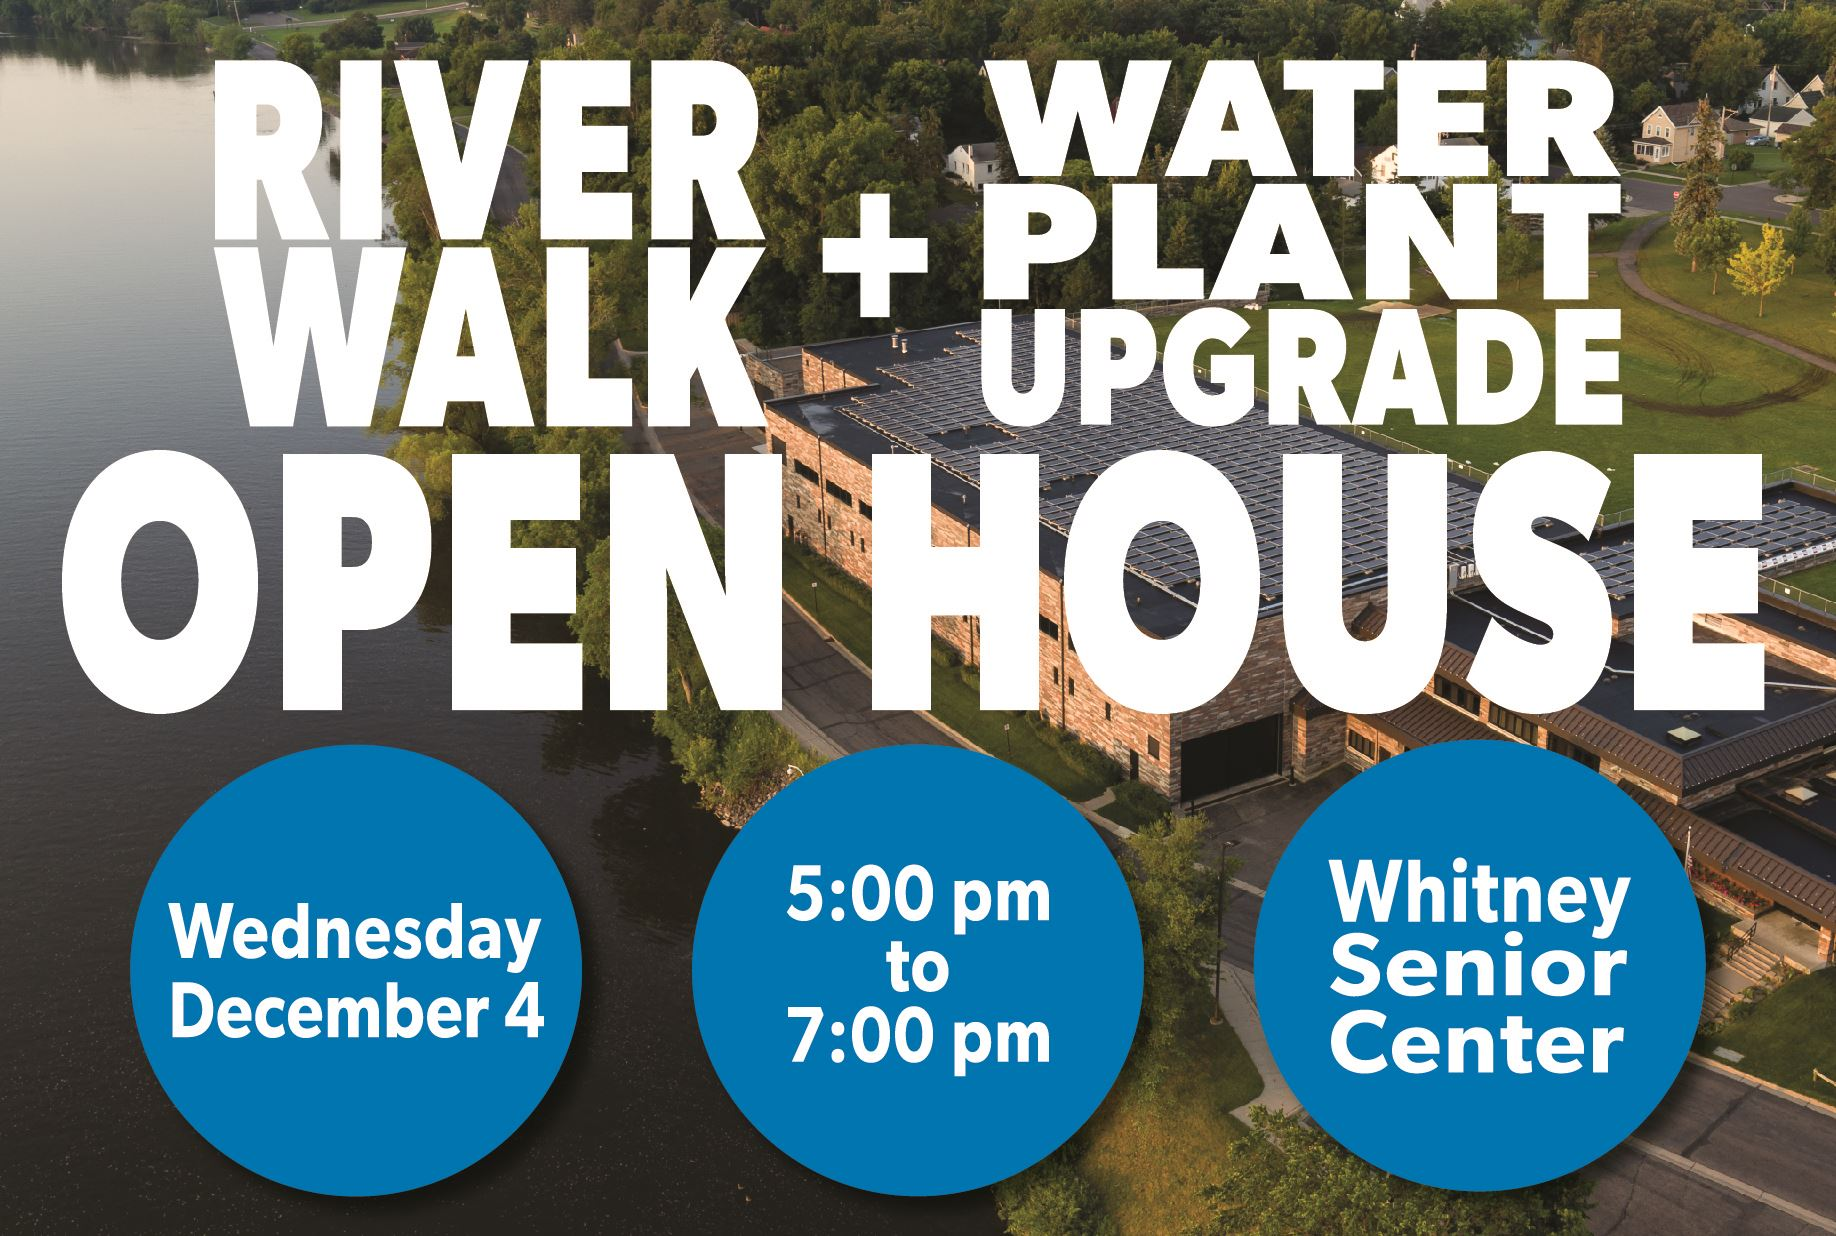 Invitation to River Walk & Water Plant Upgrade Open House December 4 5 PM